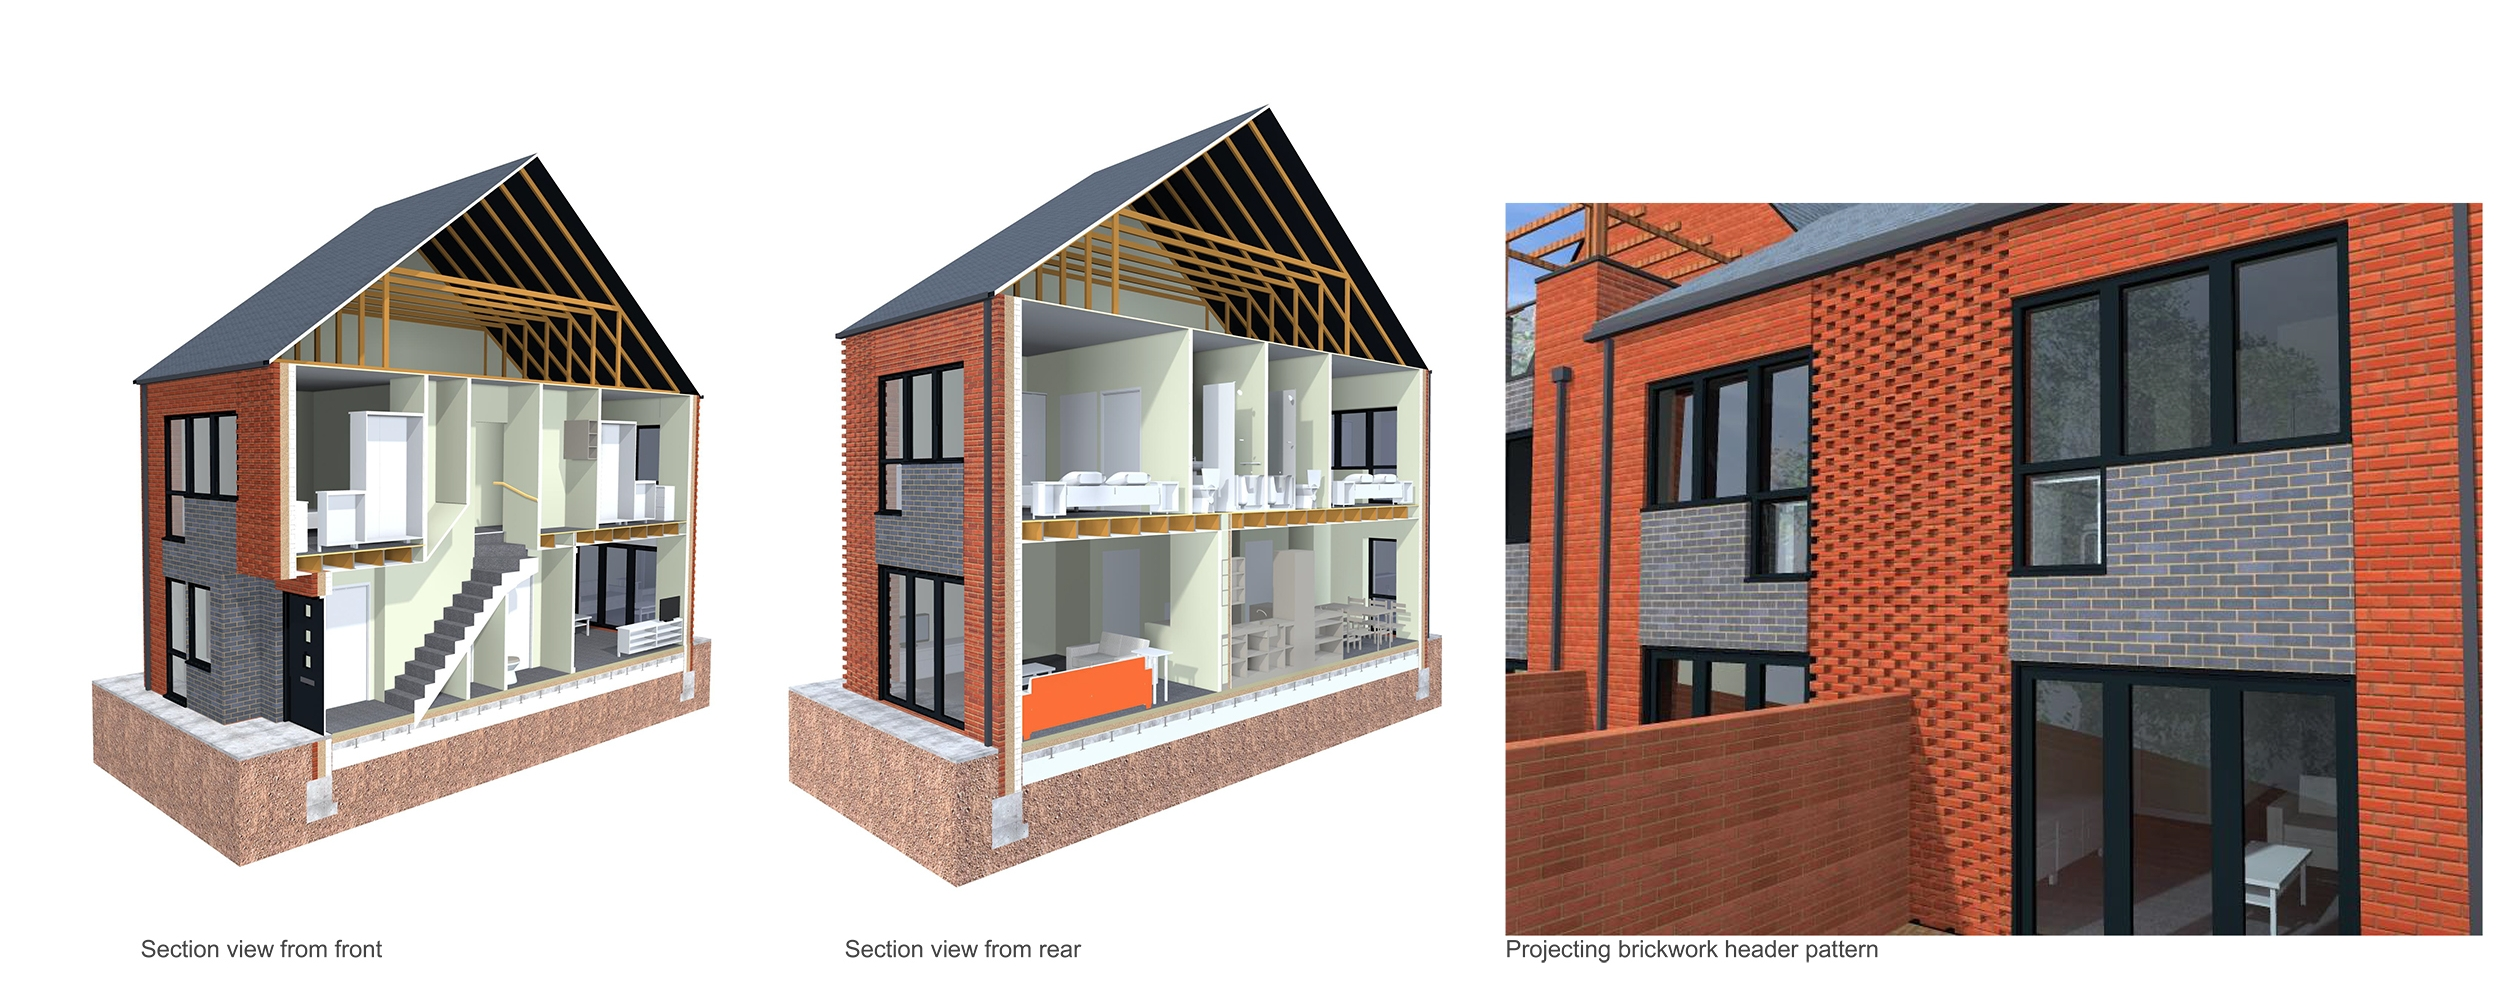 1427-P-07 Block A 2B4P Elevations, section views and features.jpg